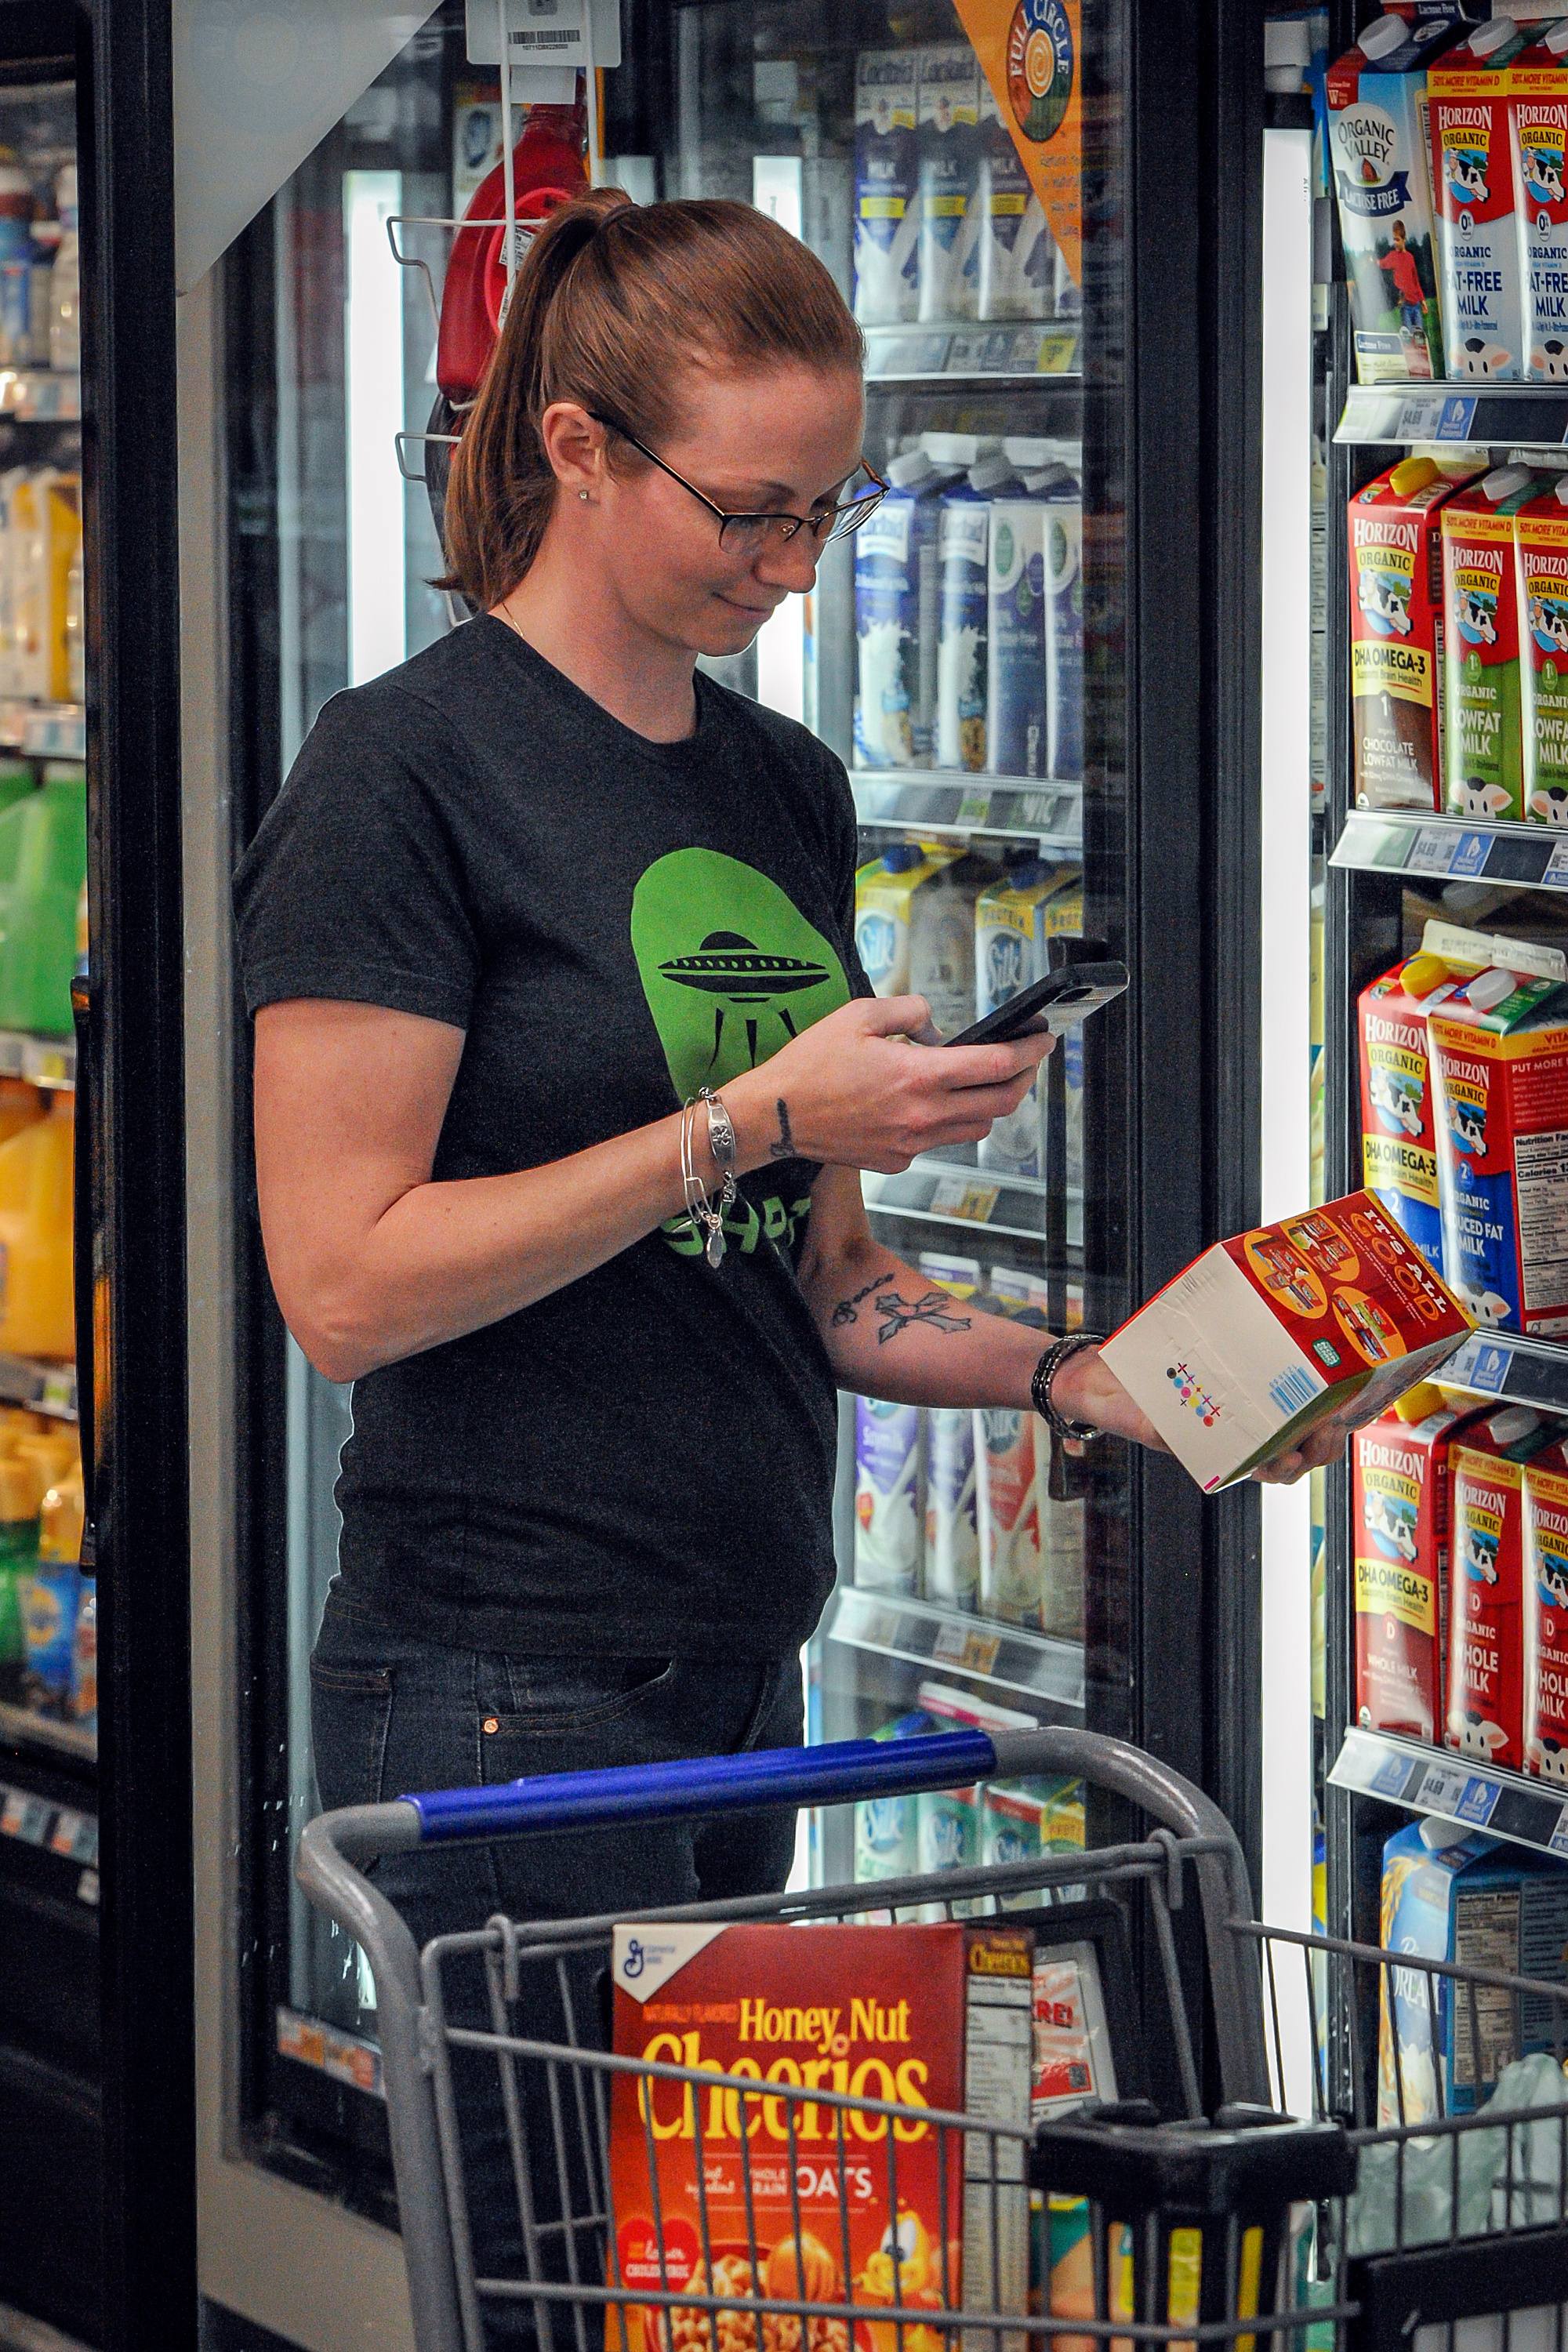 New gig economy service bringing groceries right to your